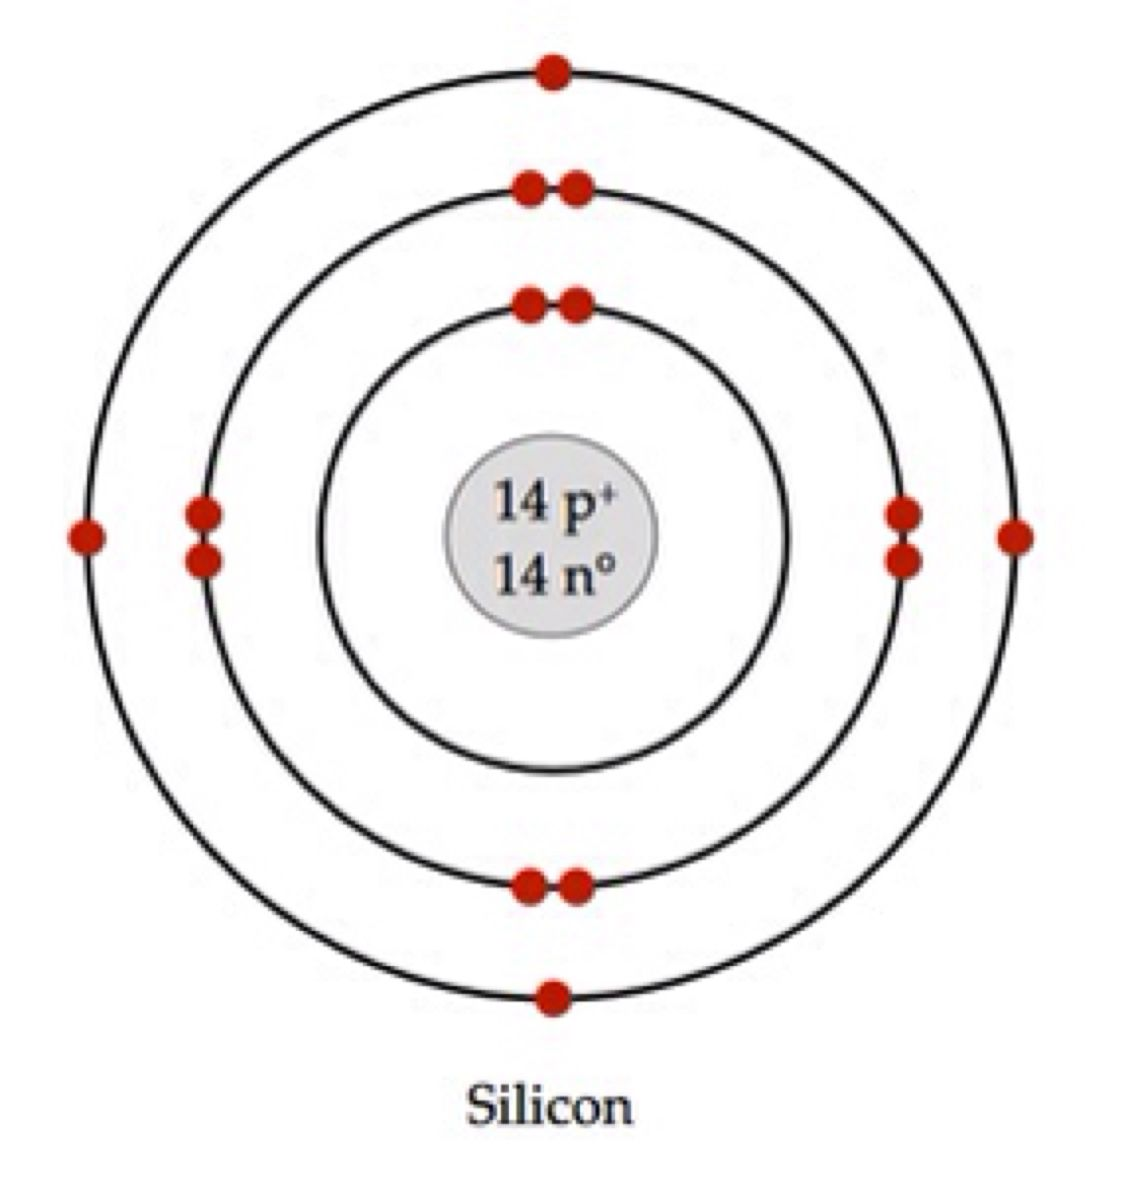 small resolution of image result for silicon atomic model school ionization energy bohr diagram silicon atom